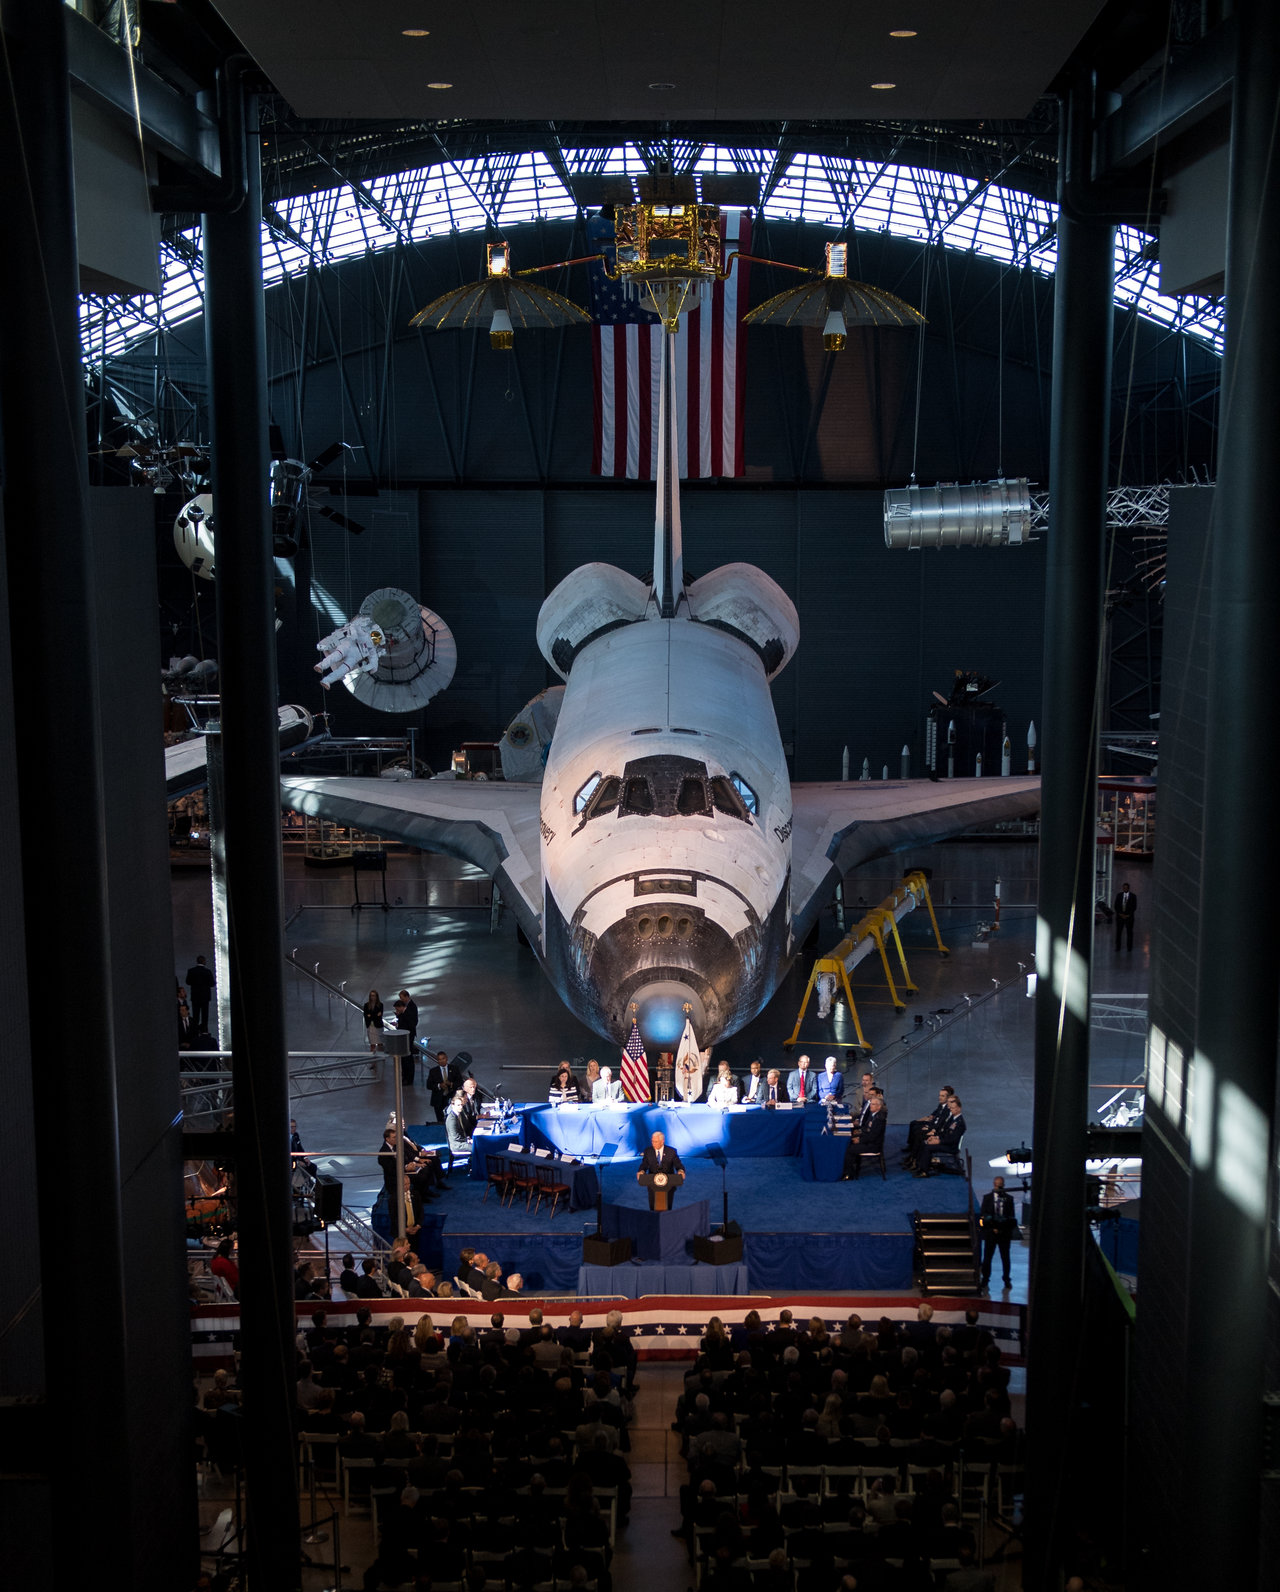 Color image of Vice President giving a speech in front of the Space Shuttle at the Smithsonian.